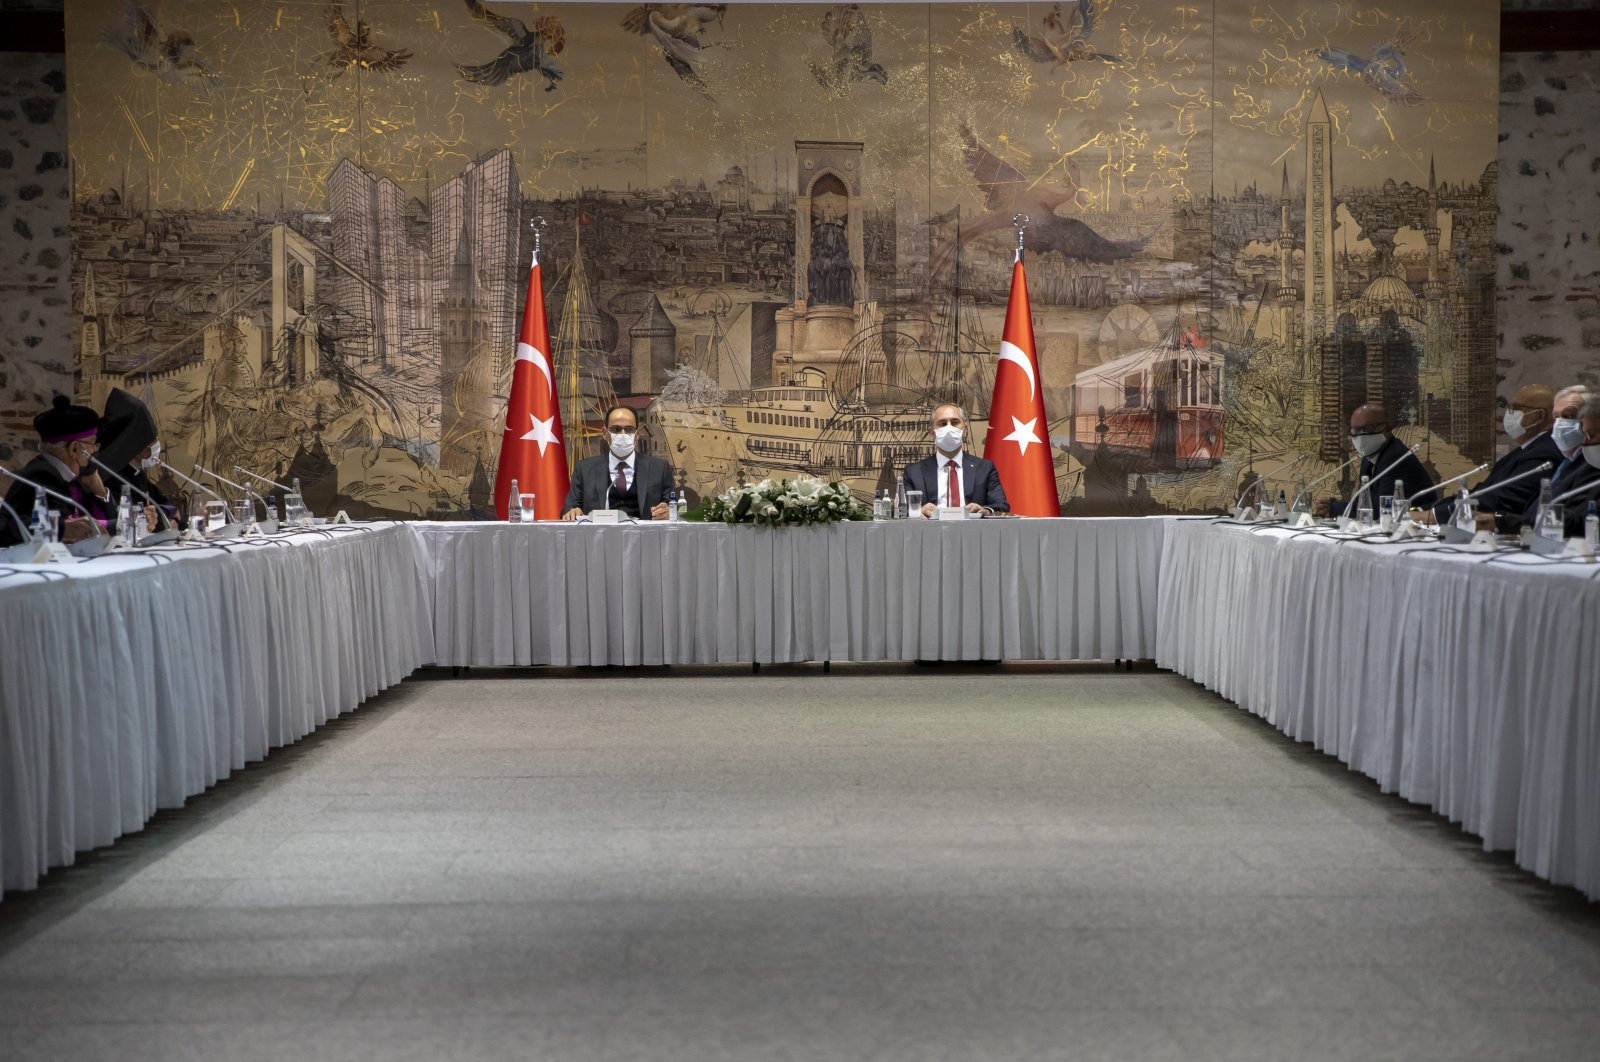 Justice Minister Abdulhamit Gül and Presidential Spokesperson Ibrahim Kalın chair a meeting with the representatives of minority communities in Turkey at the Dolmabahçe Presidential Office in Istanbul, Nov. 29, 2020. (AA Photo)